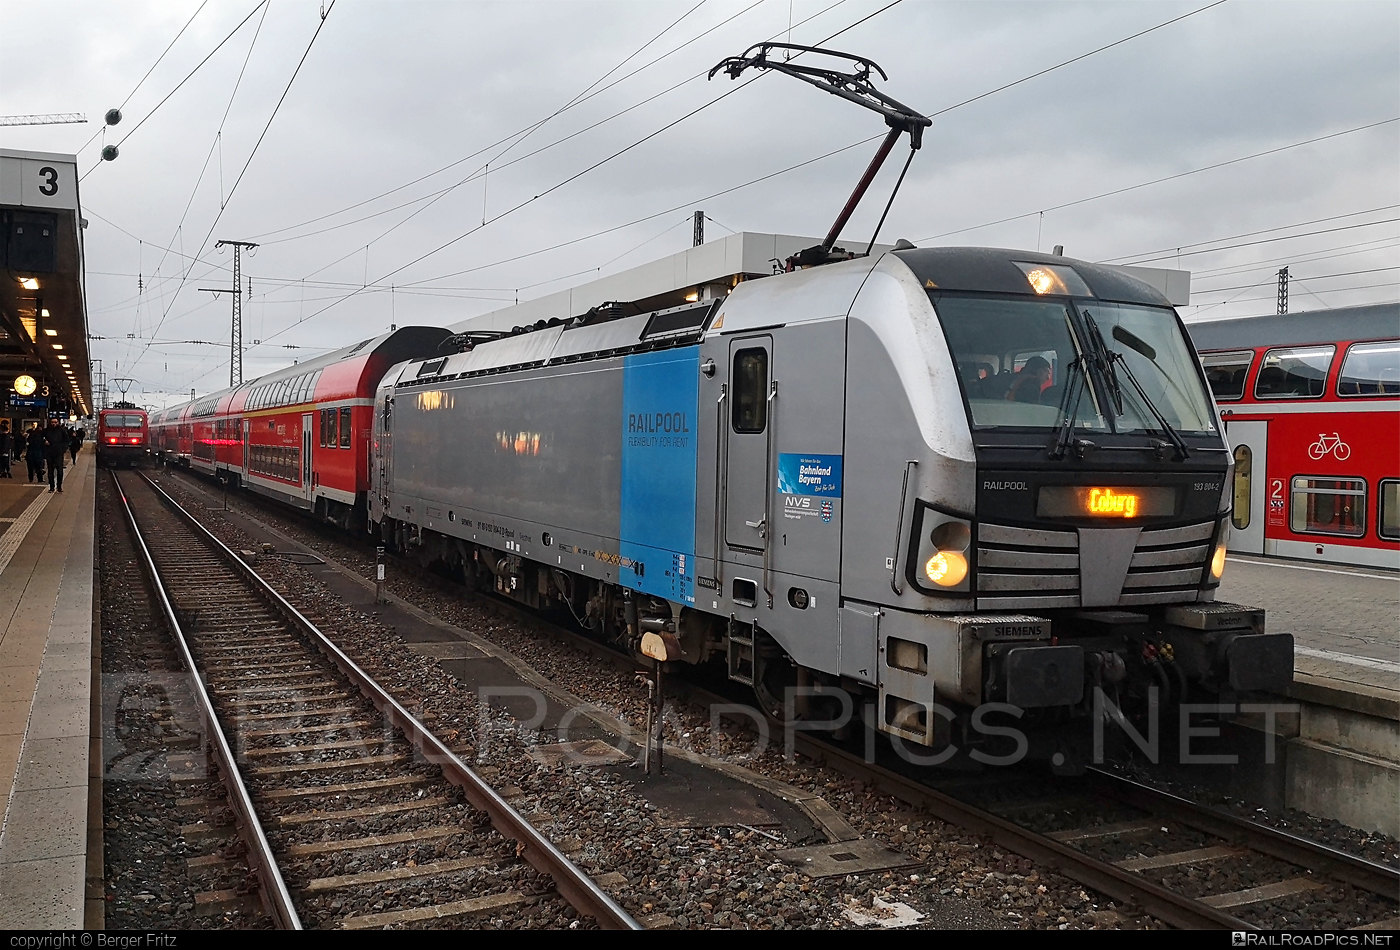 Siemens Vectron AC - 193 804-2 operated by DB Regio AG #DBregio #DBregioAG #railpool #railpoolgmbh #siemens #siemensvectron #siemensvectronac #vectron #vectronac